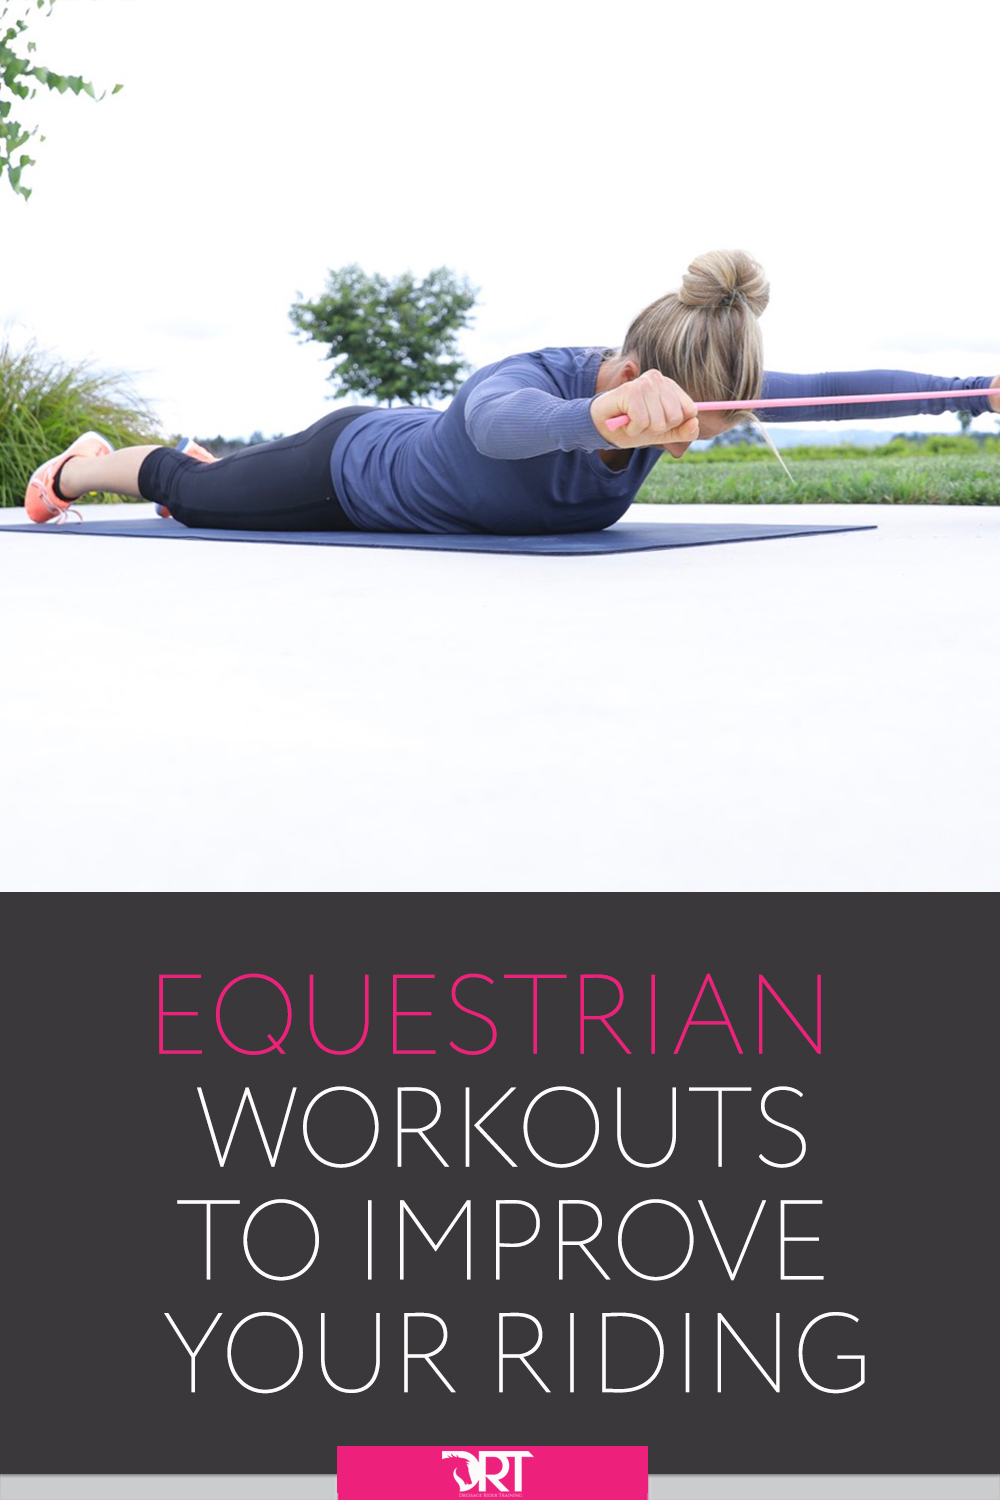 workouts specific to equestrians to help you feel more stable and secure in the saddle and prevent injury. #equestrian #equestrianfitness #equestrianrider